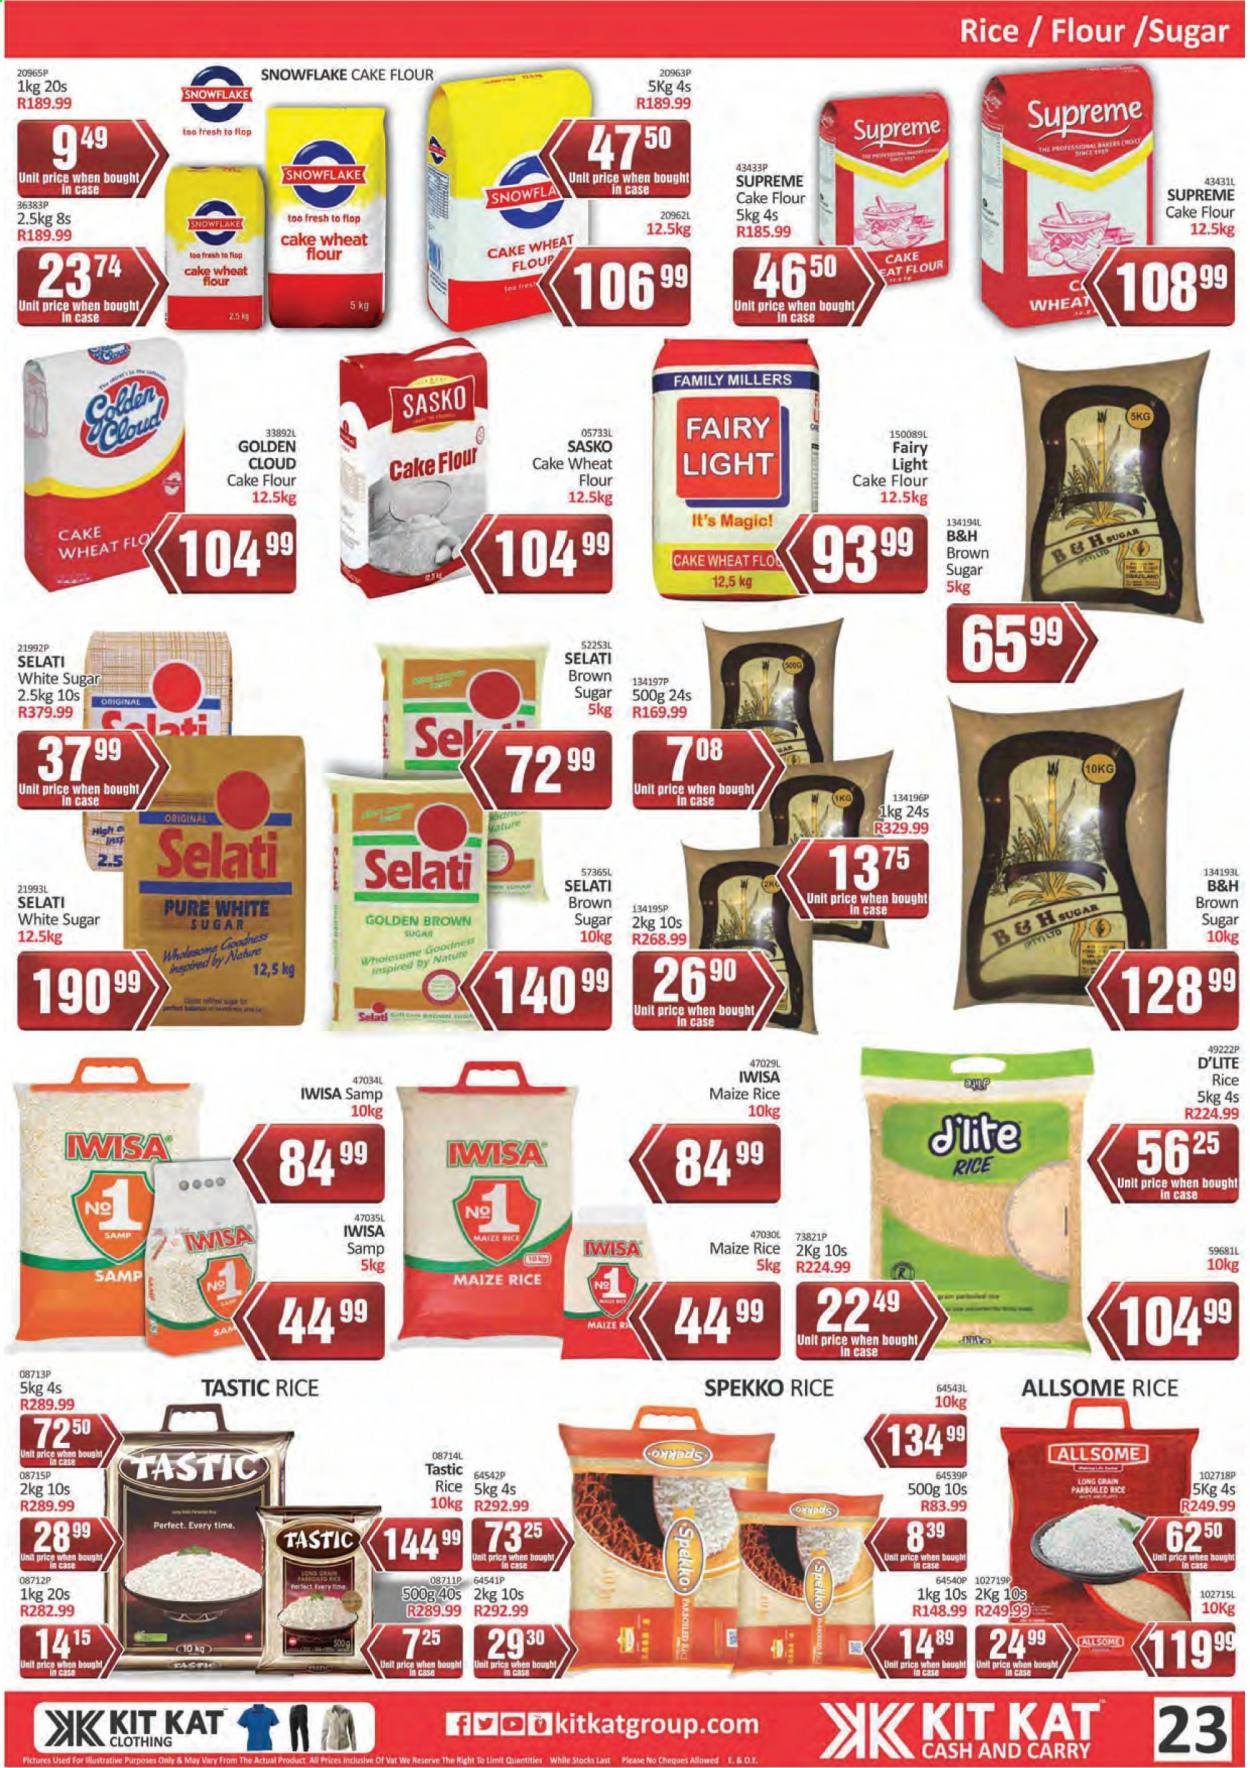 Kit Kat Cash & Carry catalogue  - 02.11.2021 - 05.12.2021. Page 23.